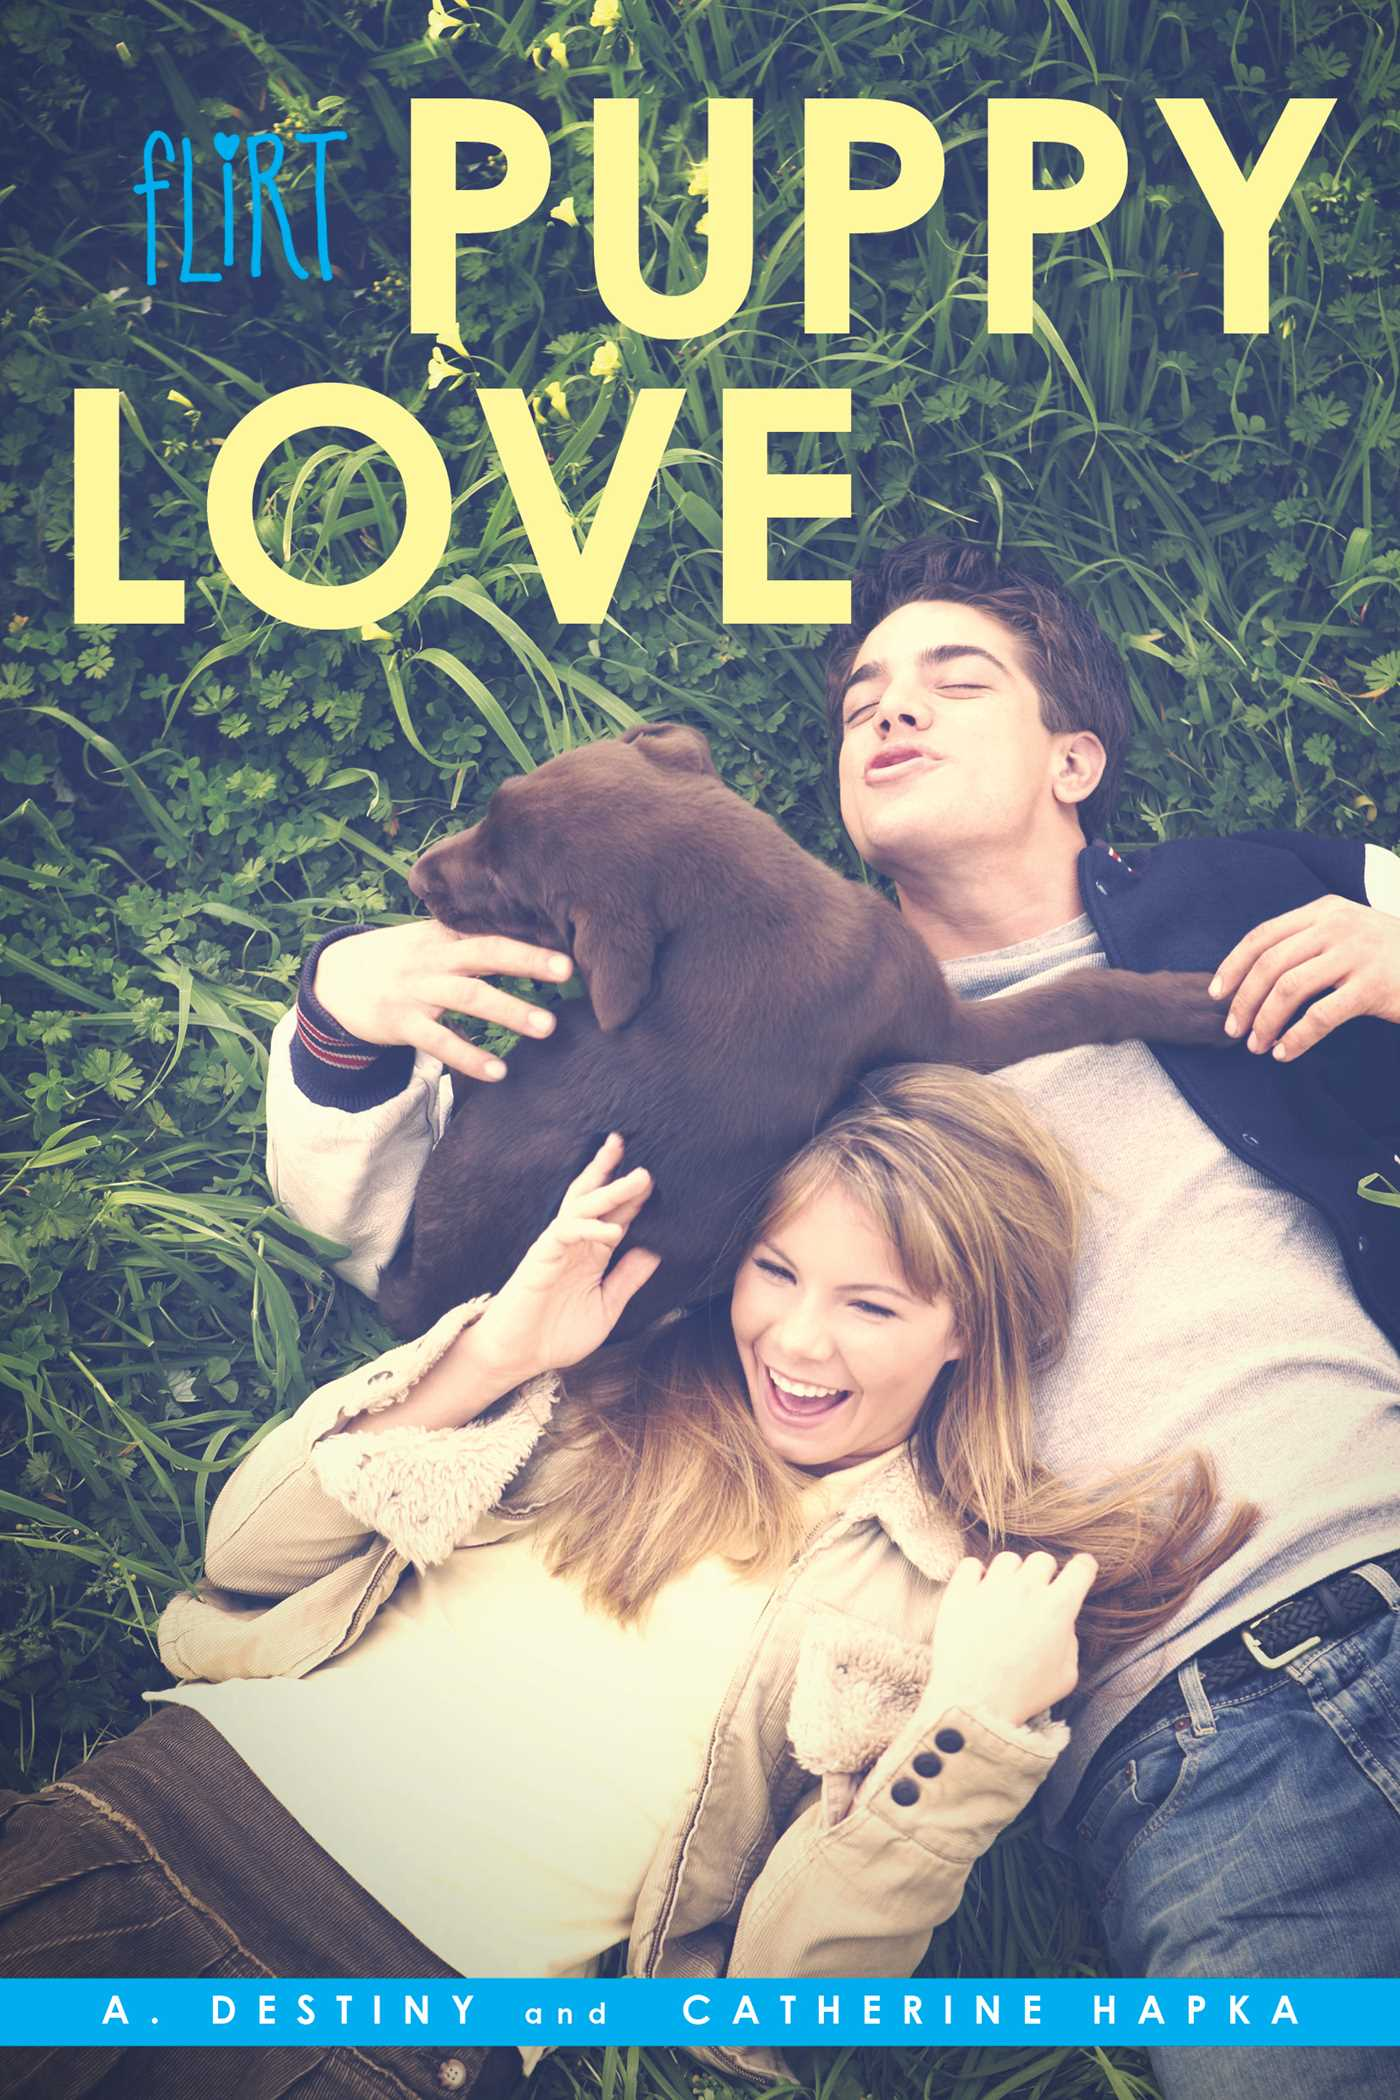 Book Cover Love : Puppy love ebook by a destiny catherine hapka official